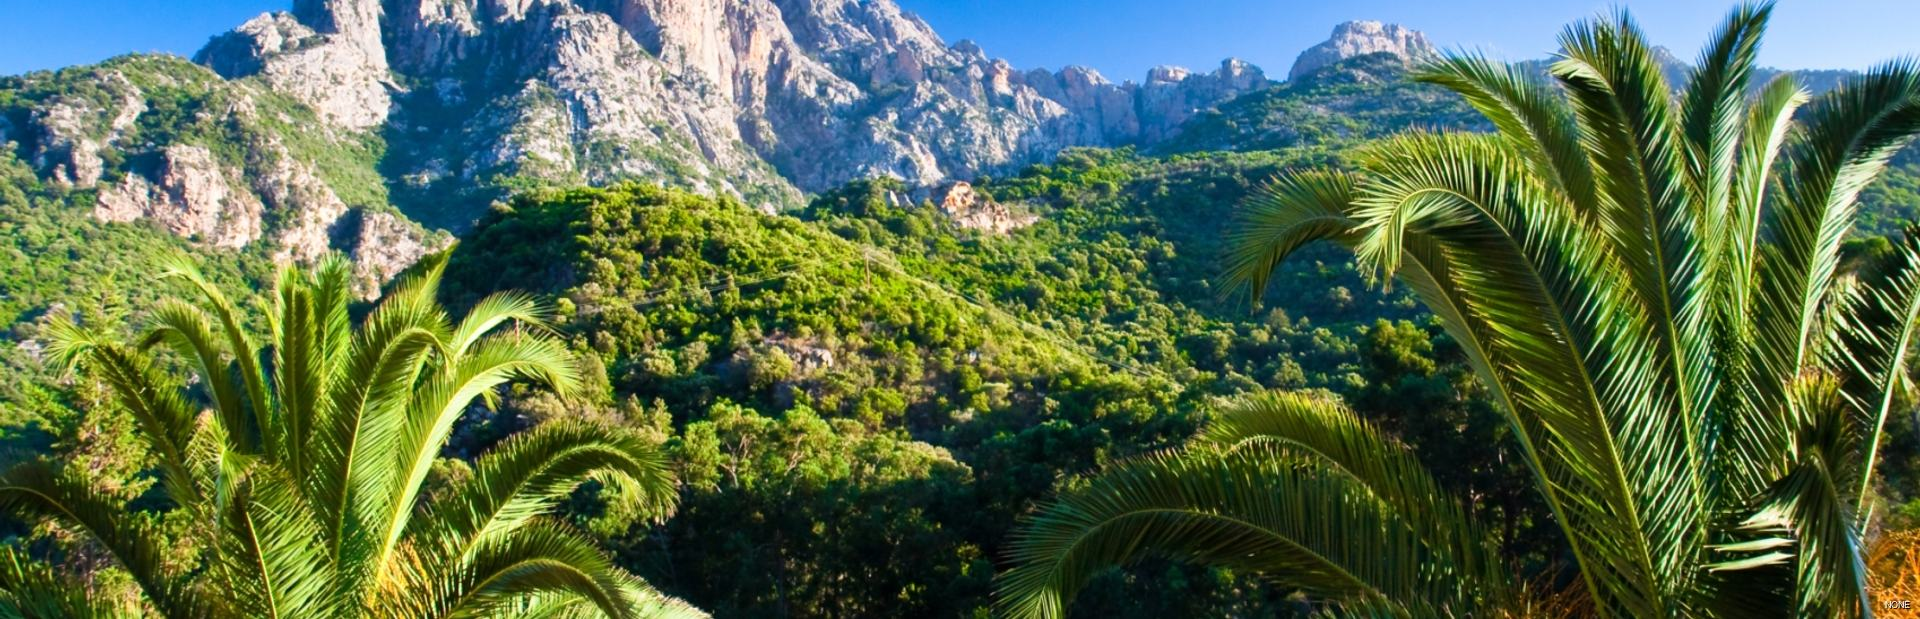 Things to see & do inCorsica